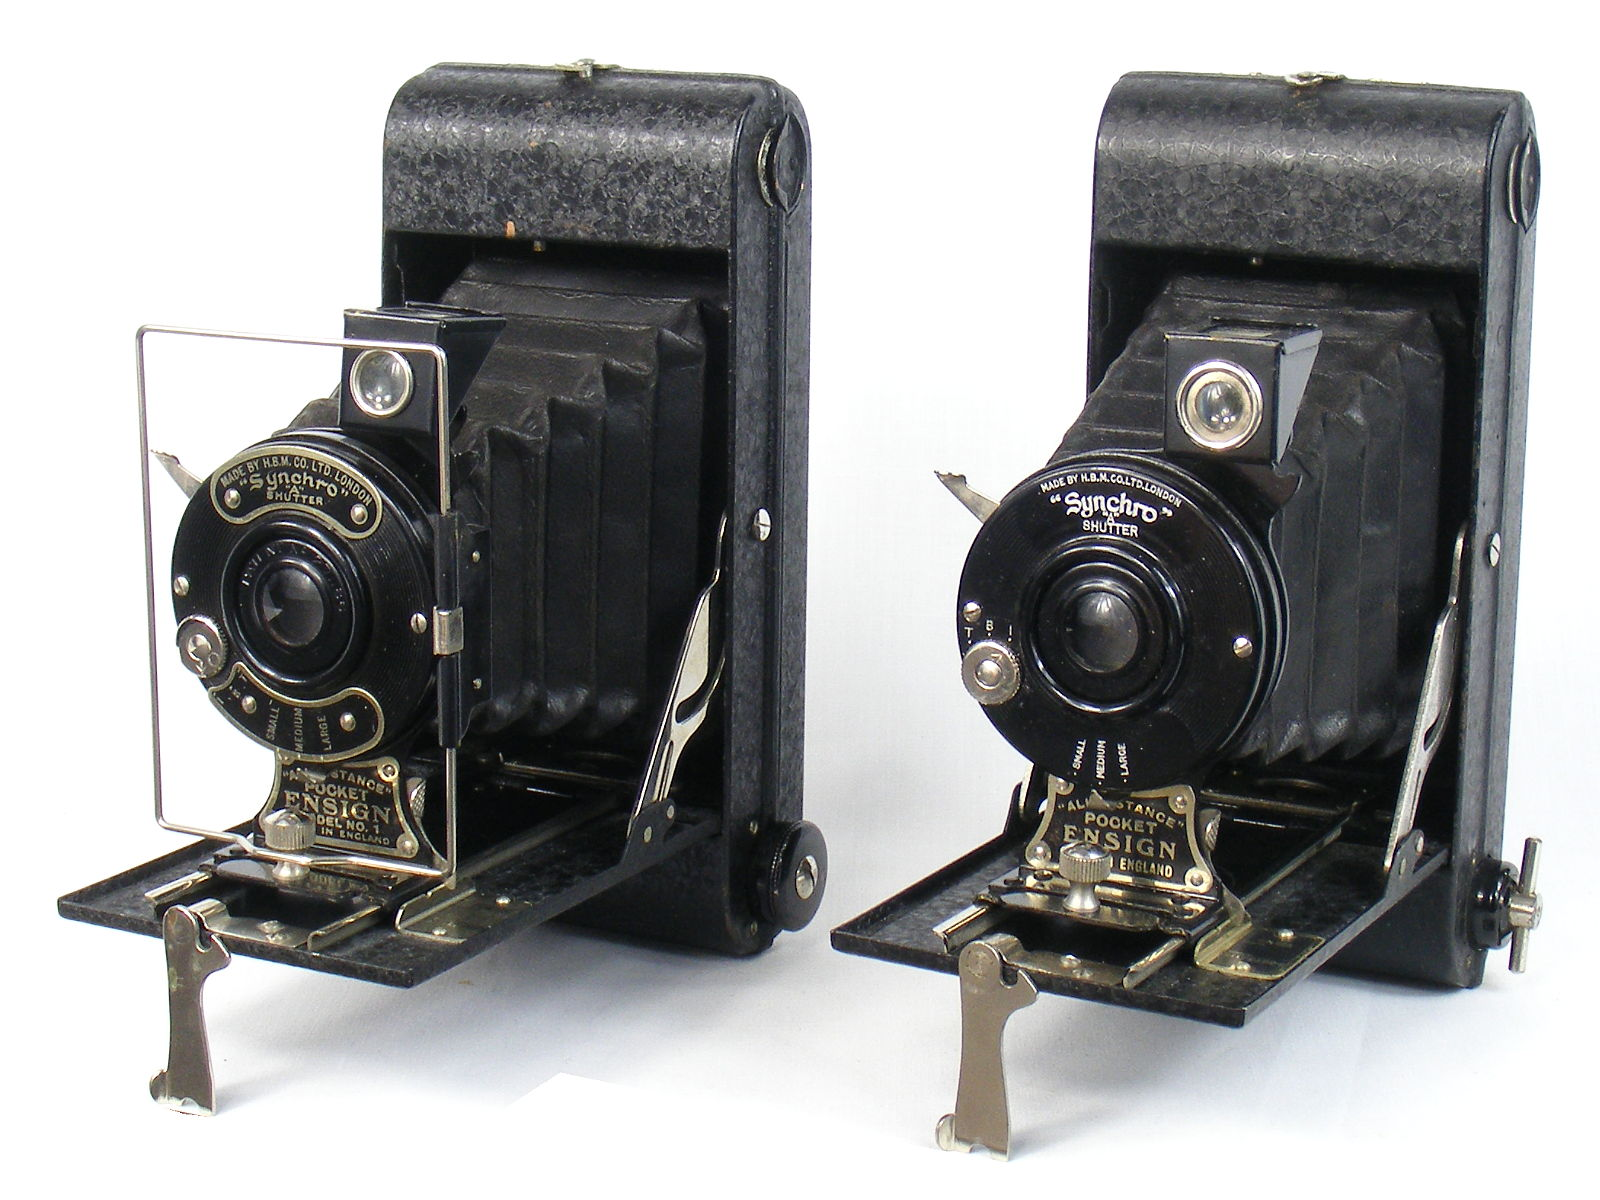 Image of All Distance Pocket Ensign Folding Camera (earl;y and late black variants)